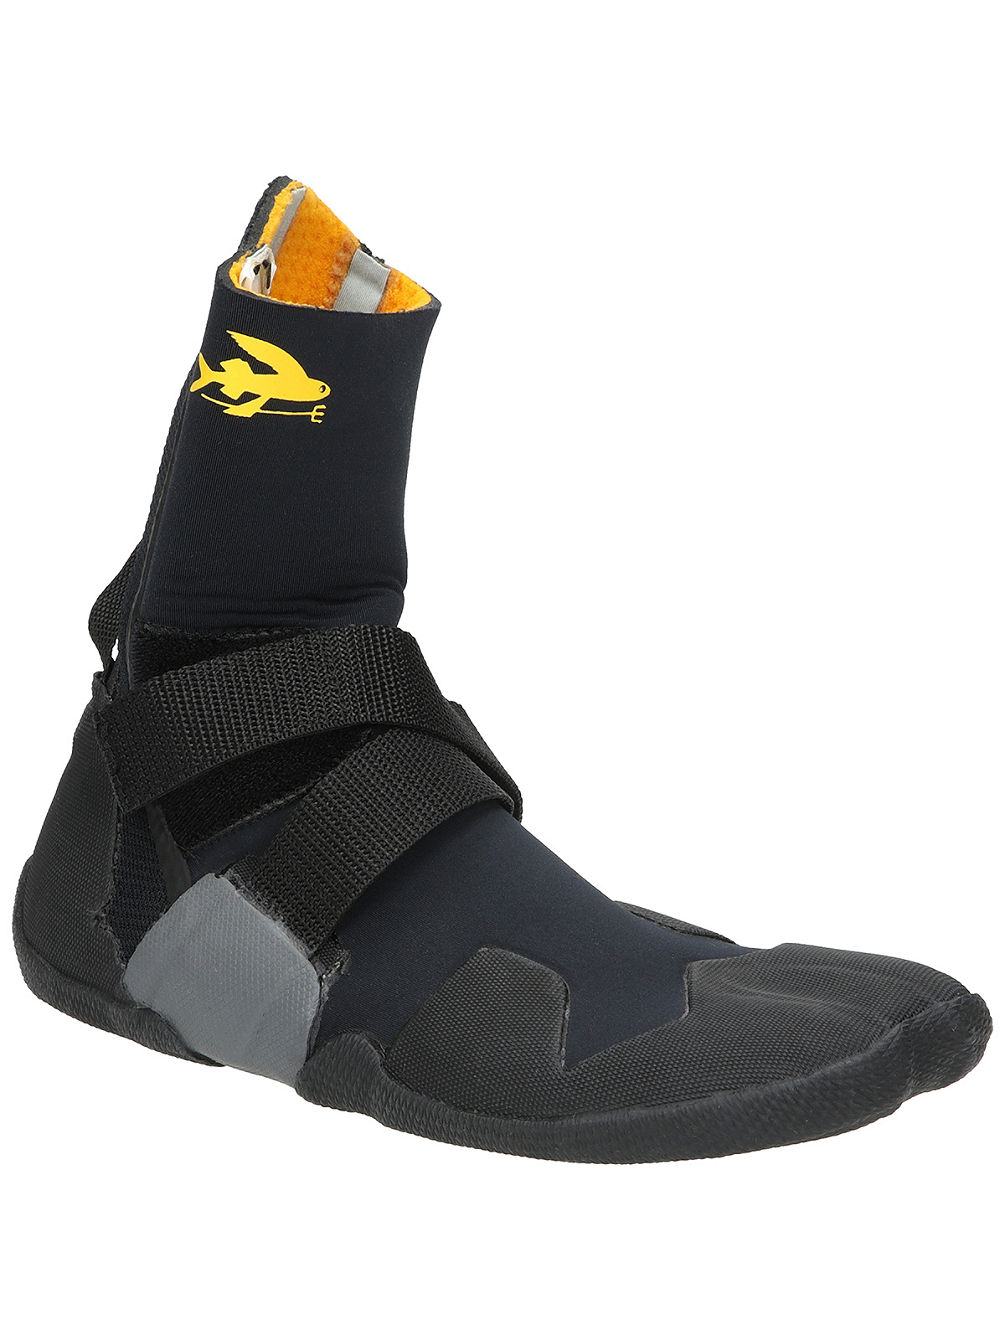 52d02a812 Buy Patagonia R3 Yulex Split Toe Booties online at Blue Tomato